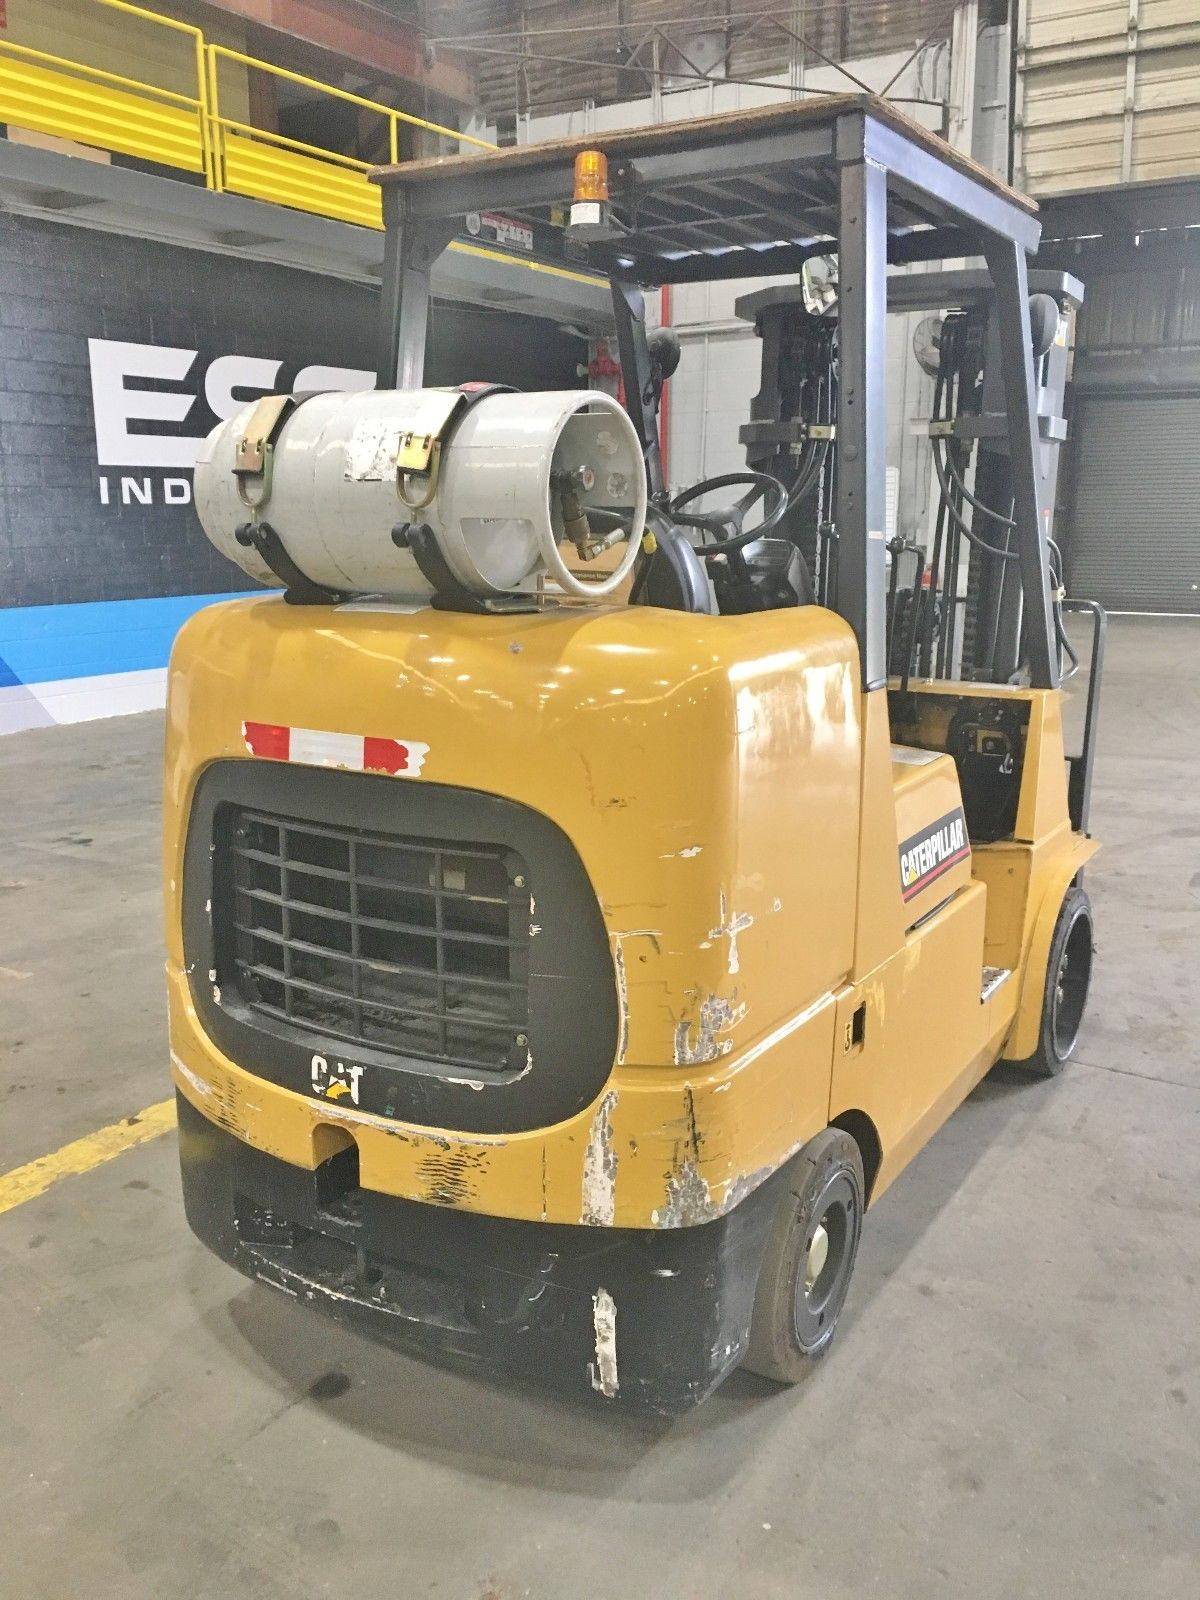 Lot 1 - Caterpillar 10k Forklift - only 800 hours!!! GC45KS